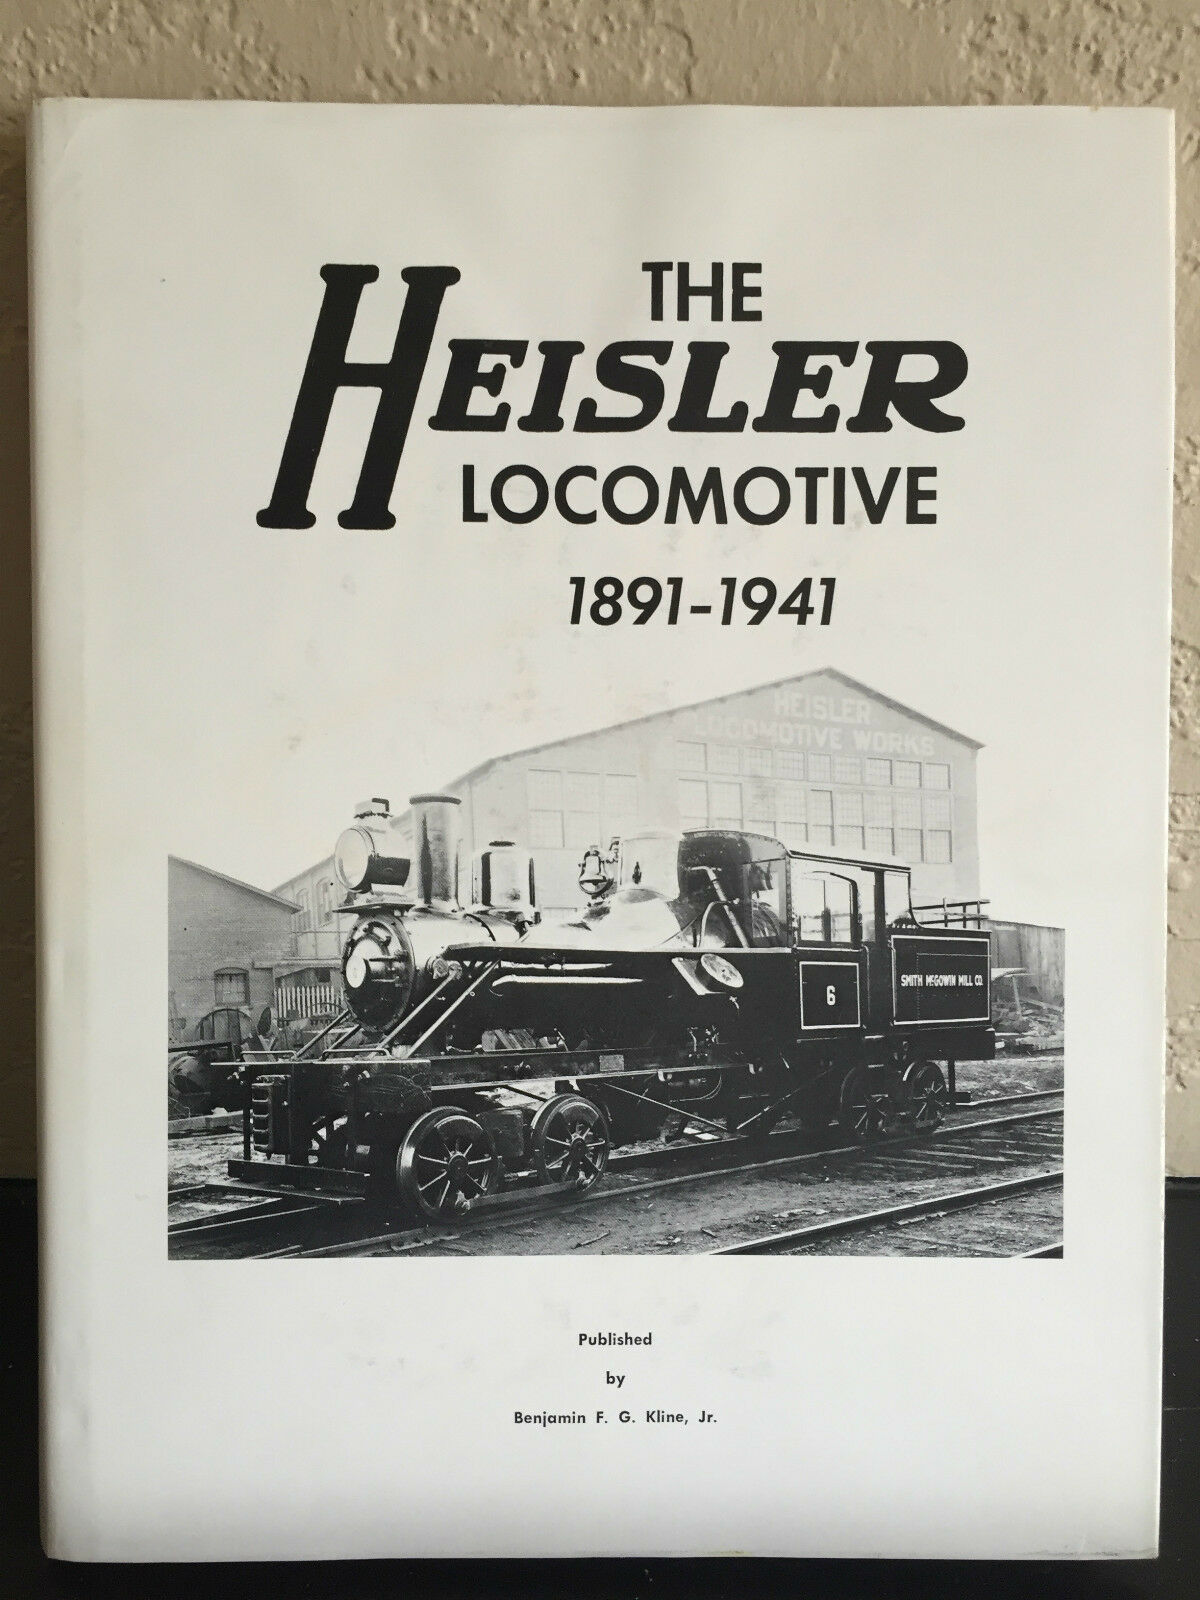 1982 THE HEISLER LOCOMOTIVE 1891-1941 BY BENJAMIN F.G. KLINE JR